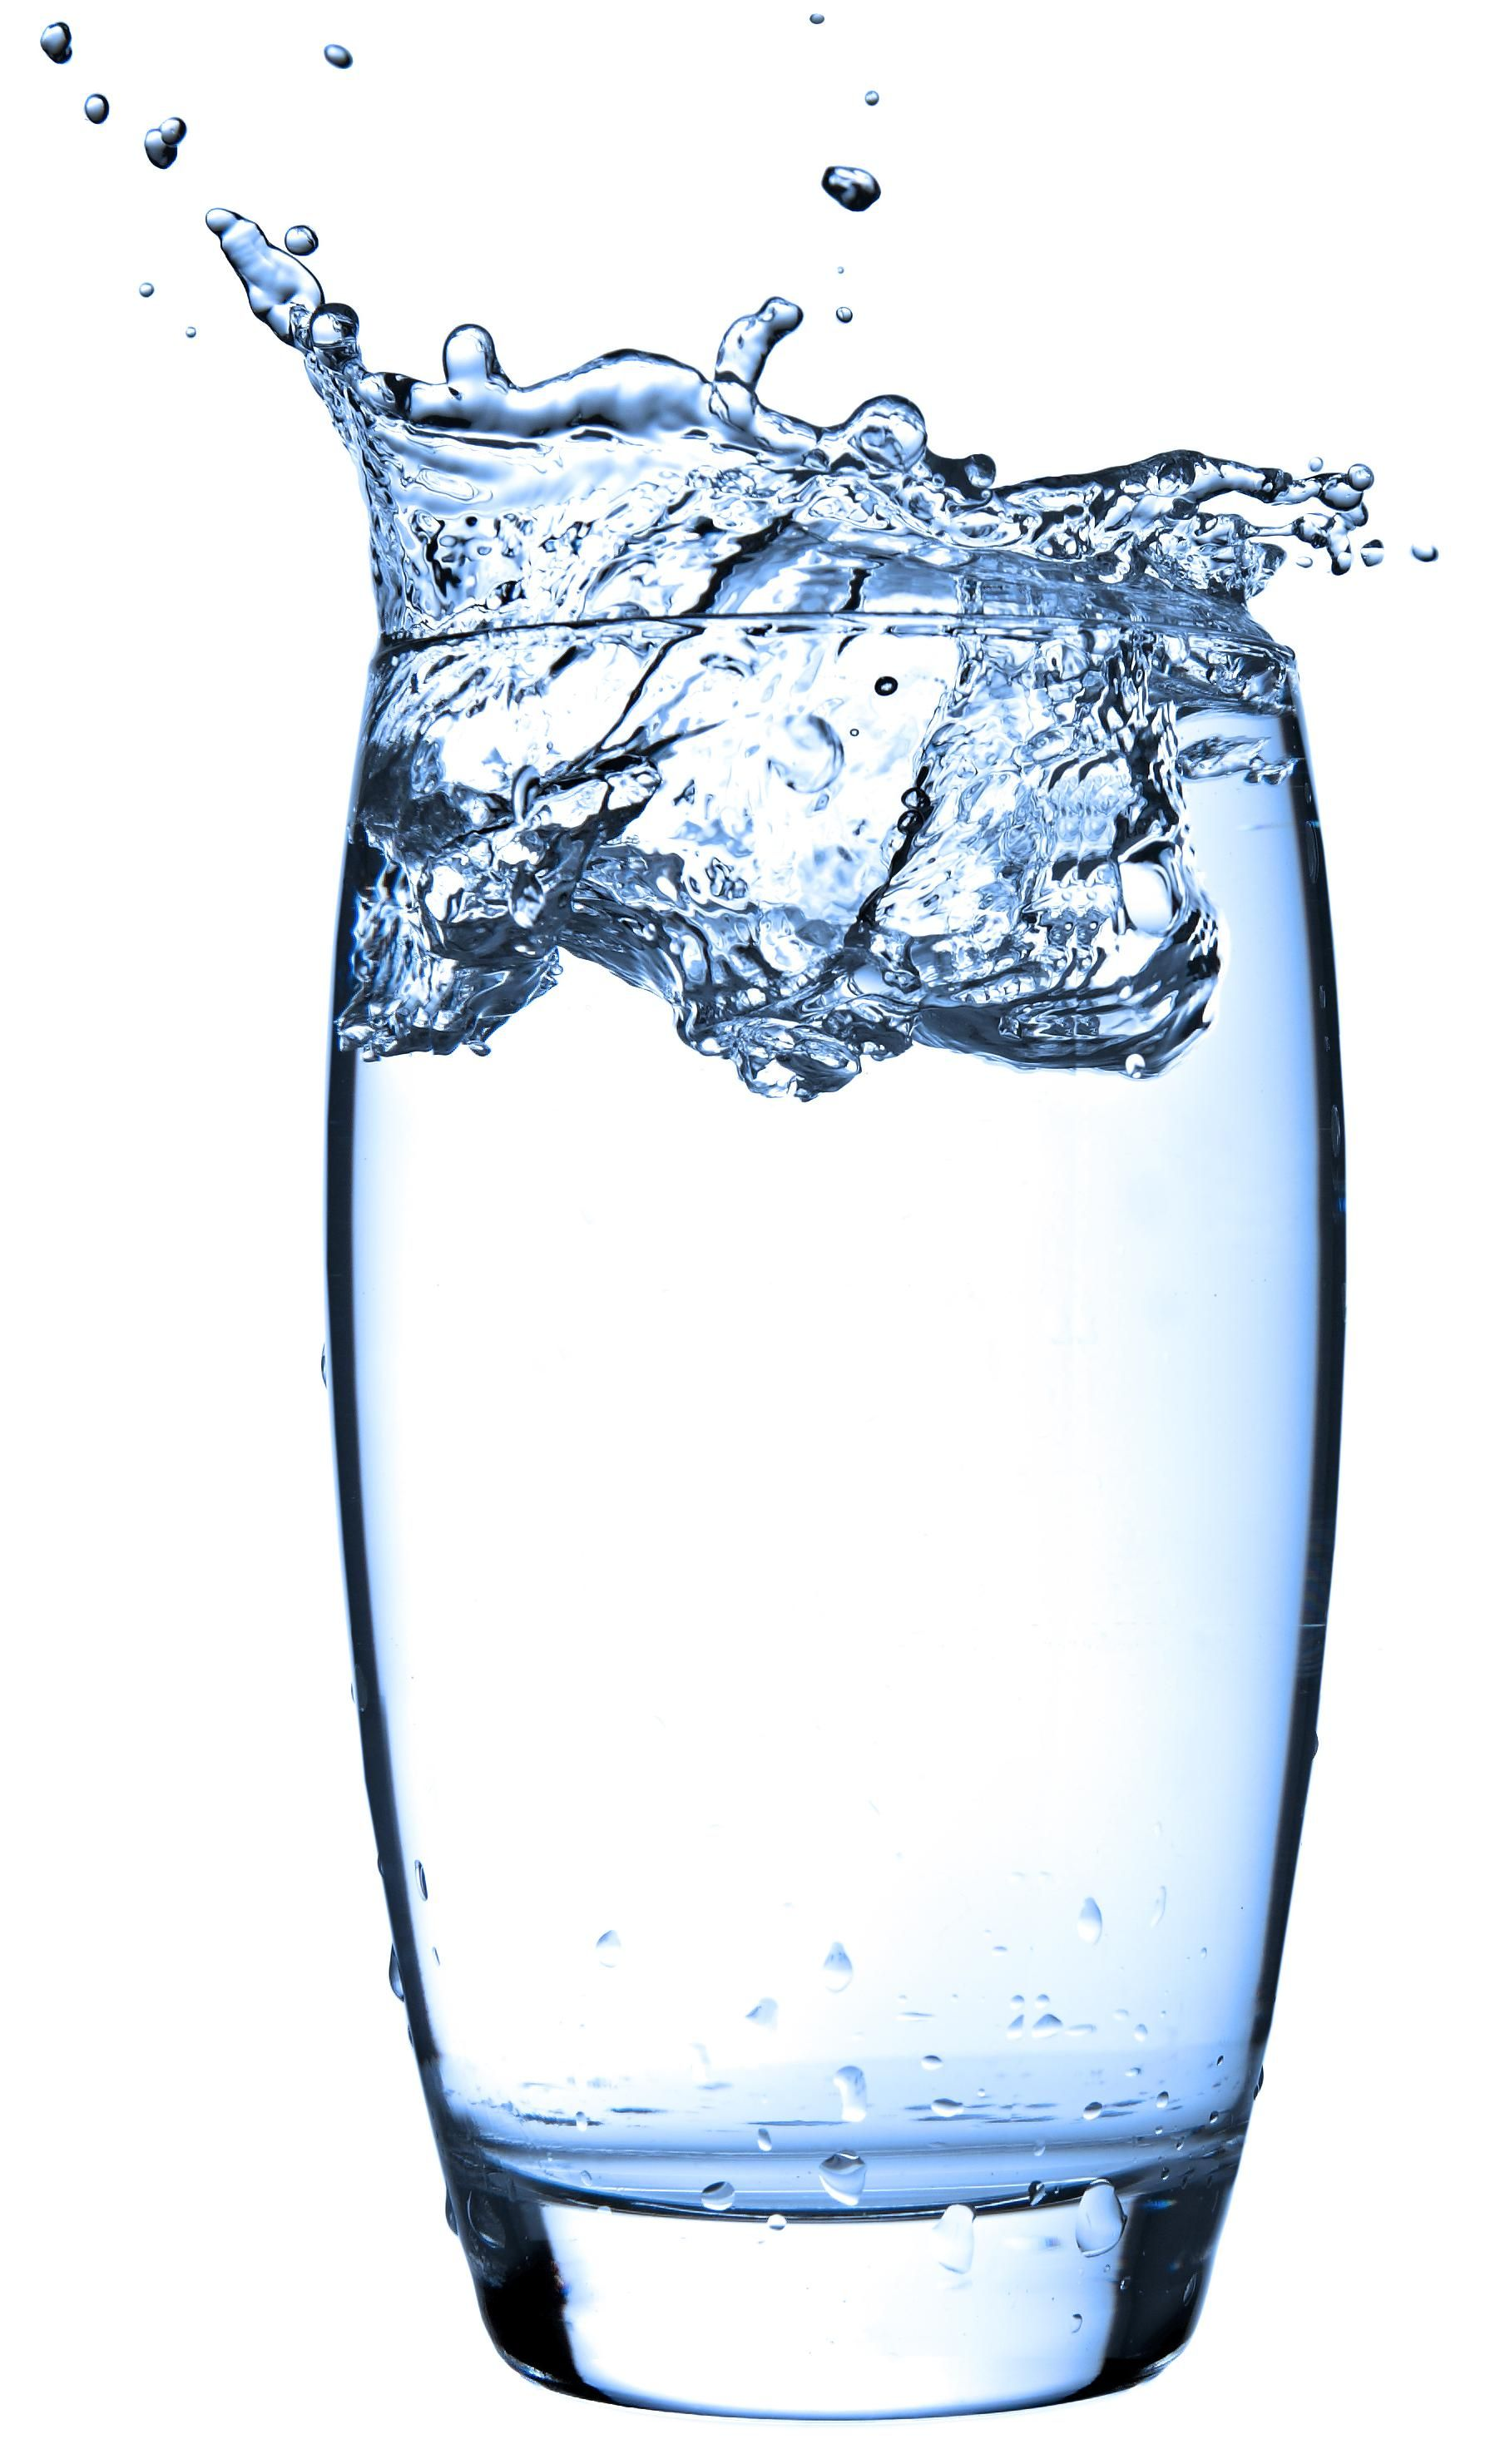 My interview with Gluten Free School about the importance of drinking water and how to participate in the 40 Day Water Challenge.